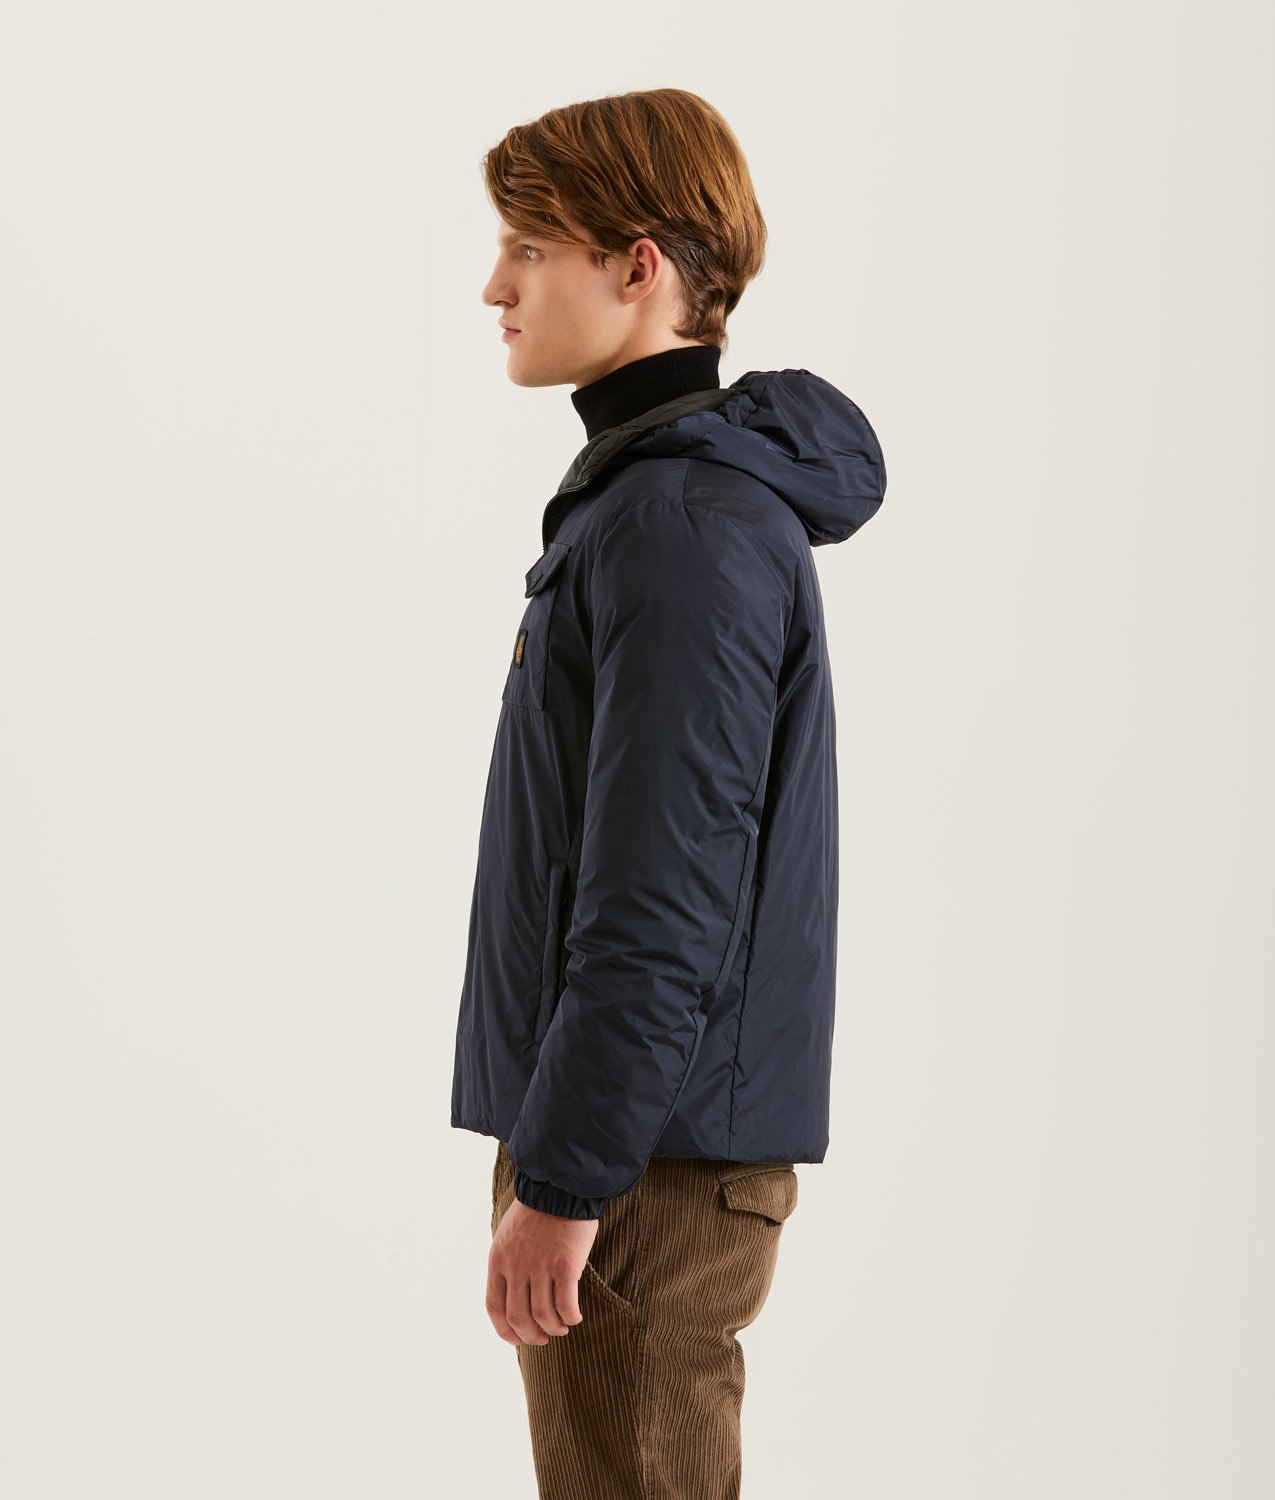 MIDTOWN JACKET